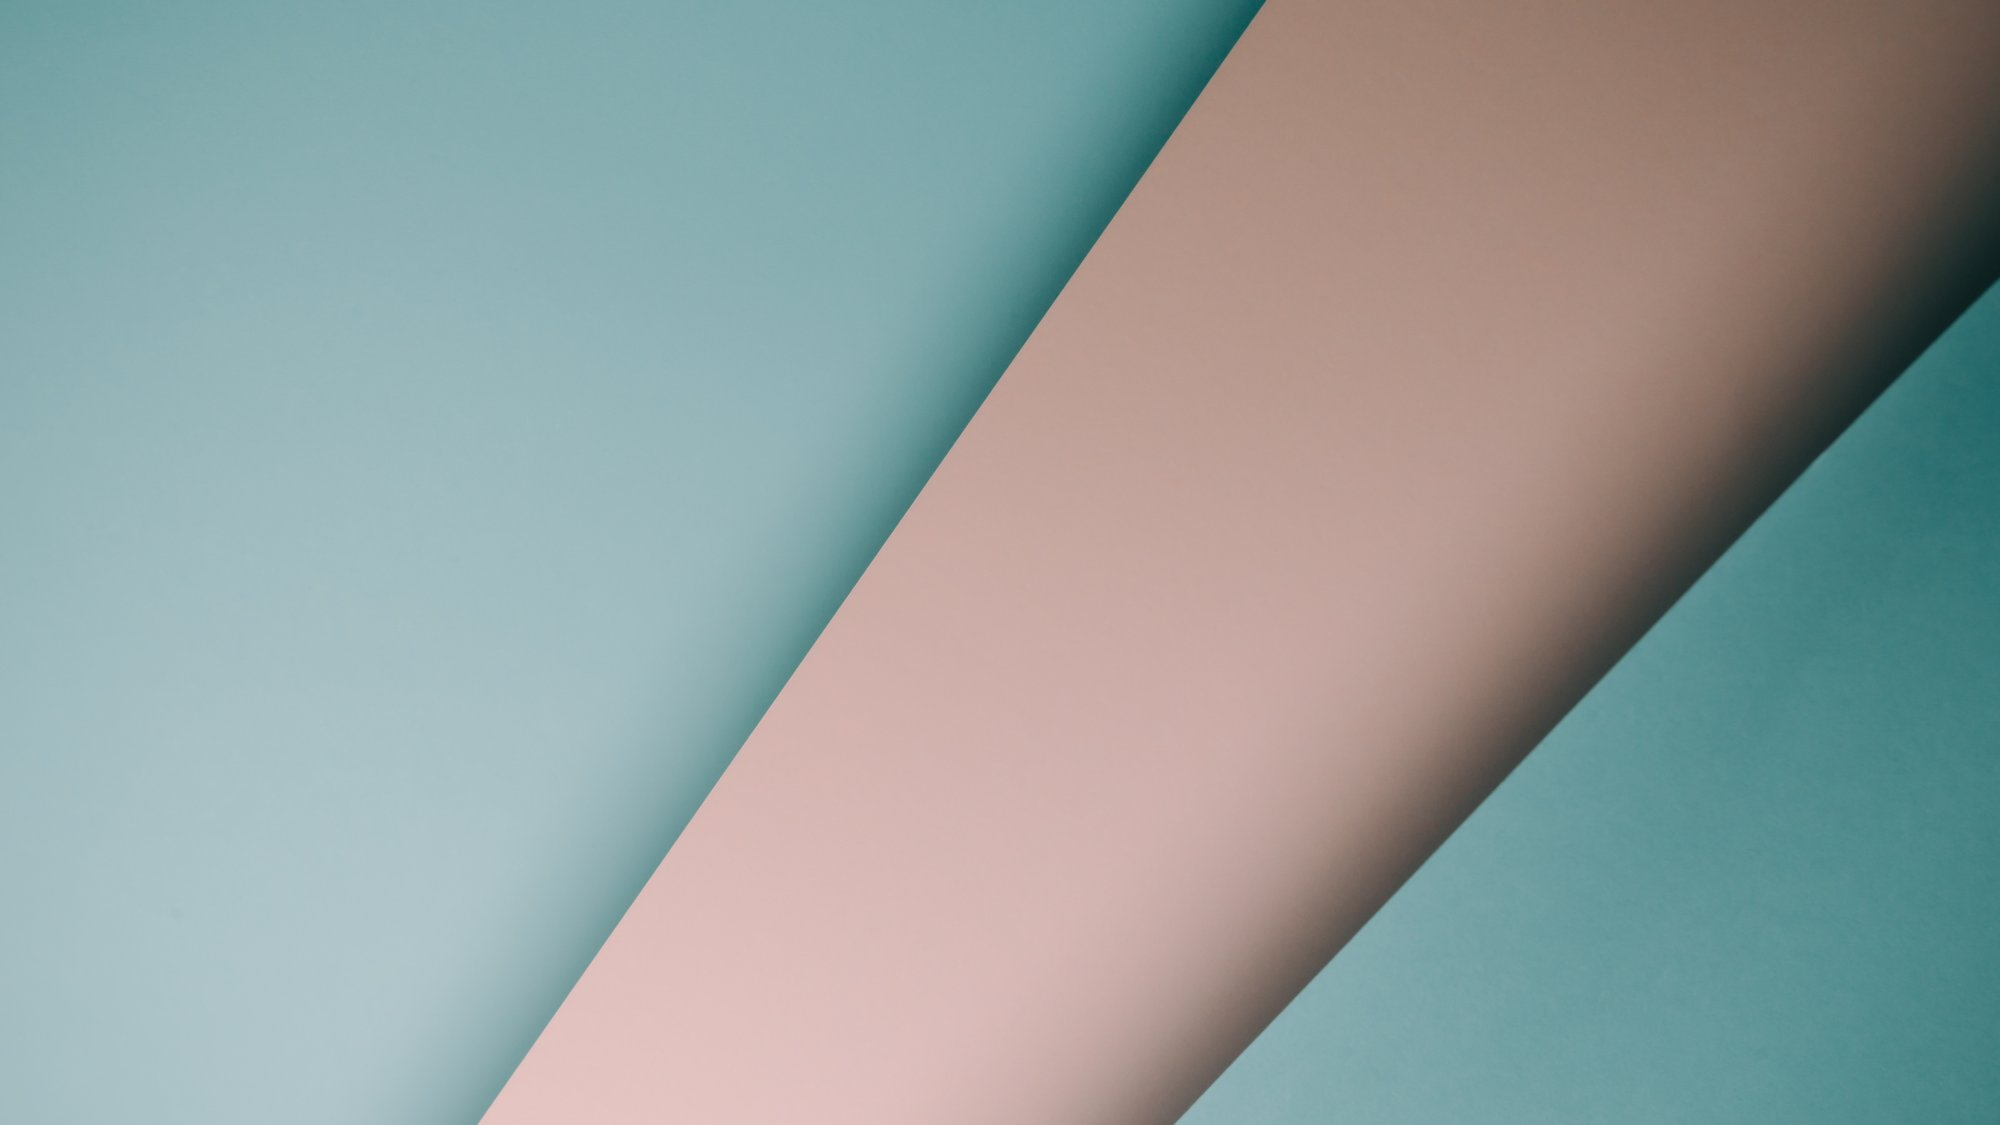 abstract image of paper in pink and blue stripes 粉红色和蓝色条纹纸的抽象图像